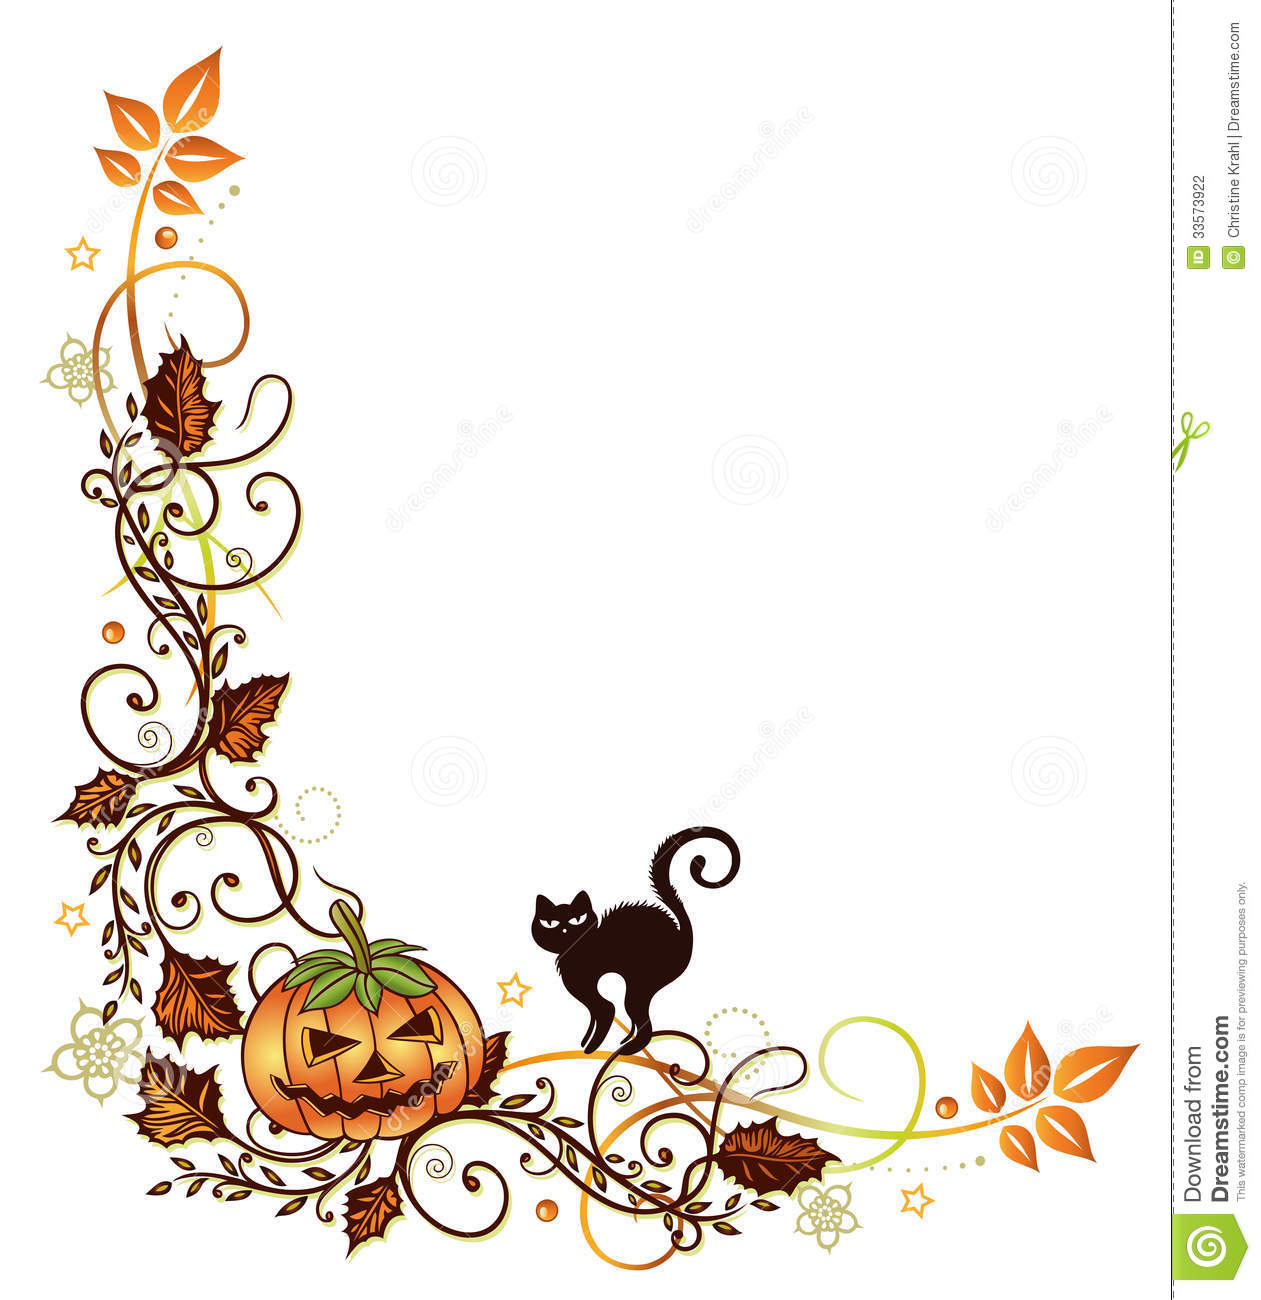 Leaves clipart halloween Panda Border Free Clipart Halloween